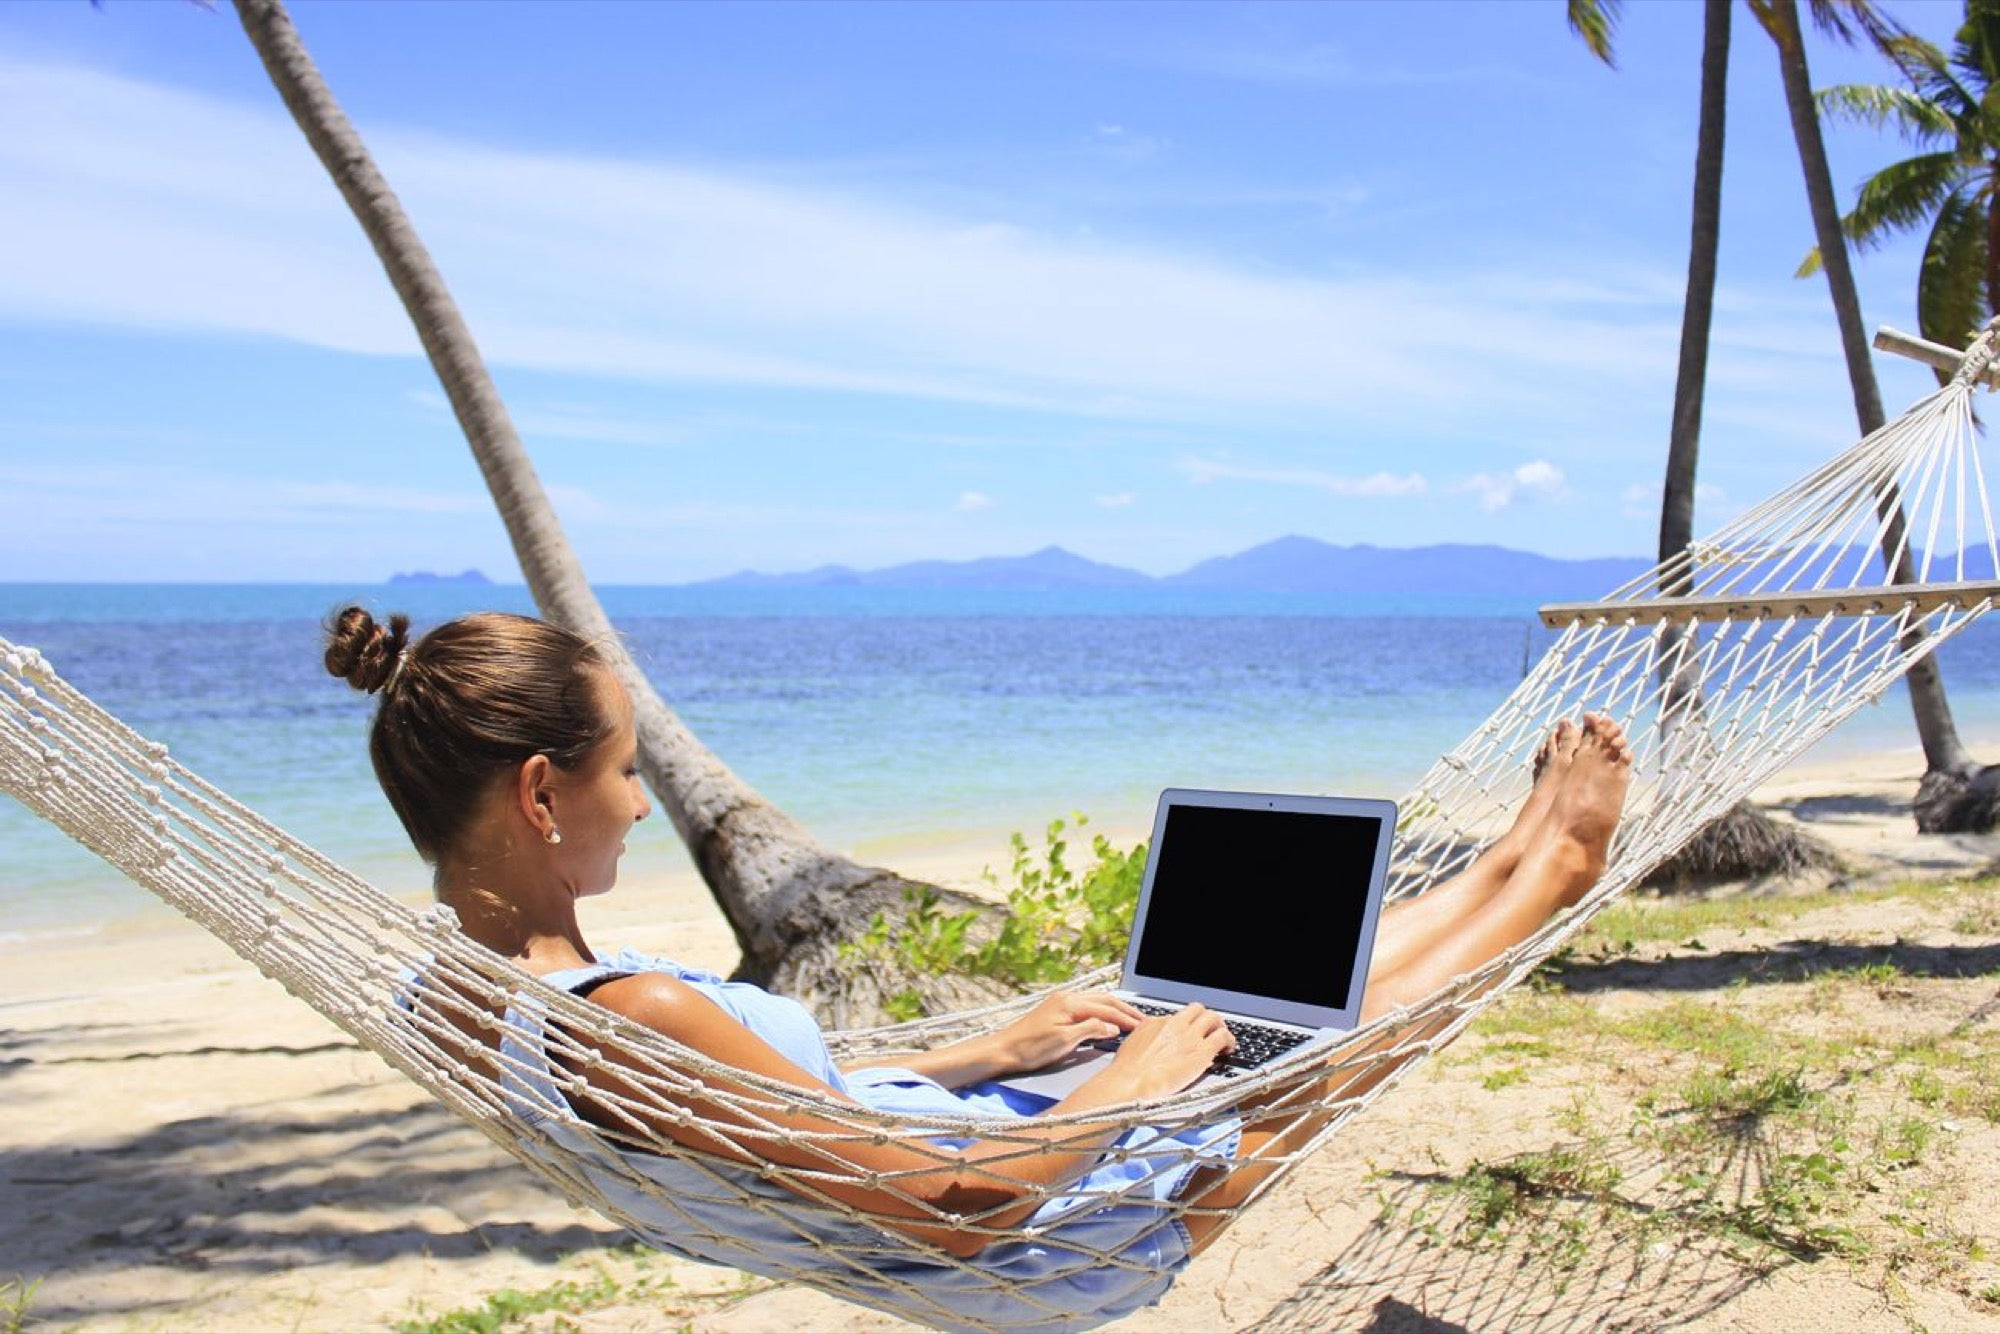 Top 5 Digital Nomad Jobs in 2020